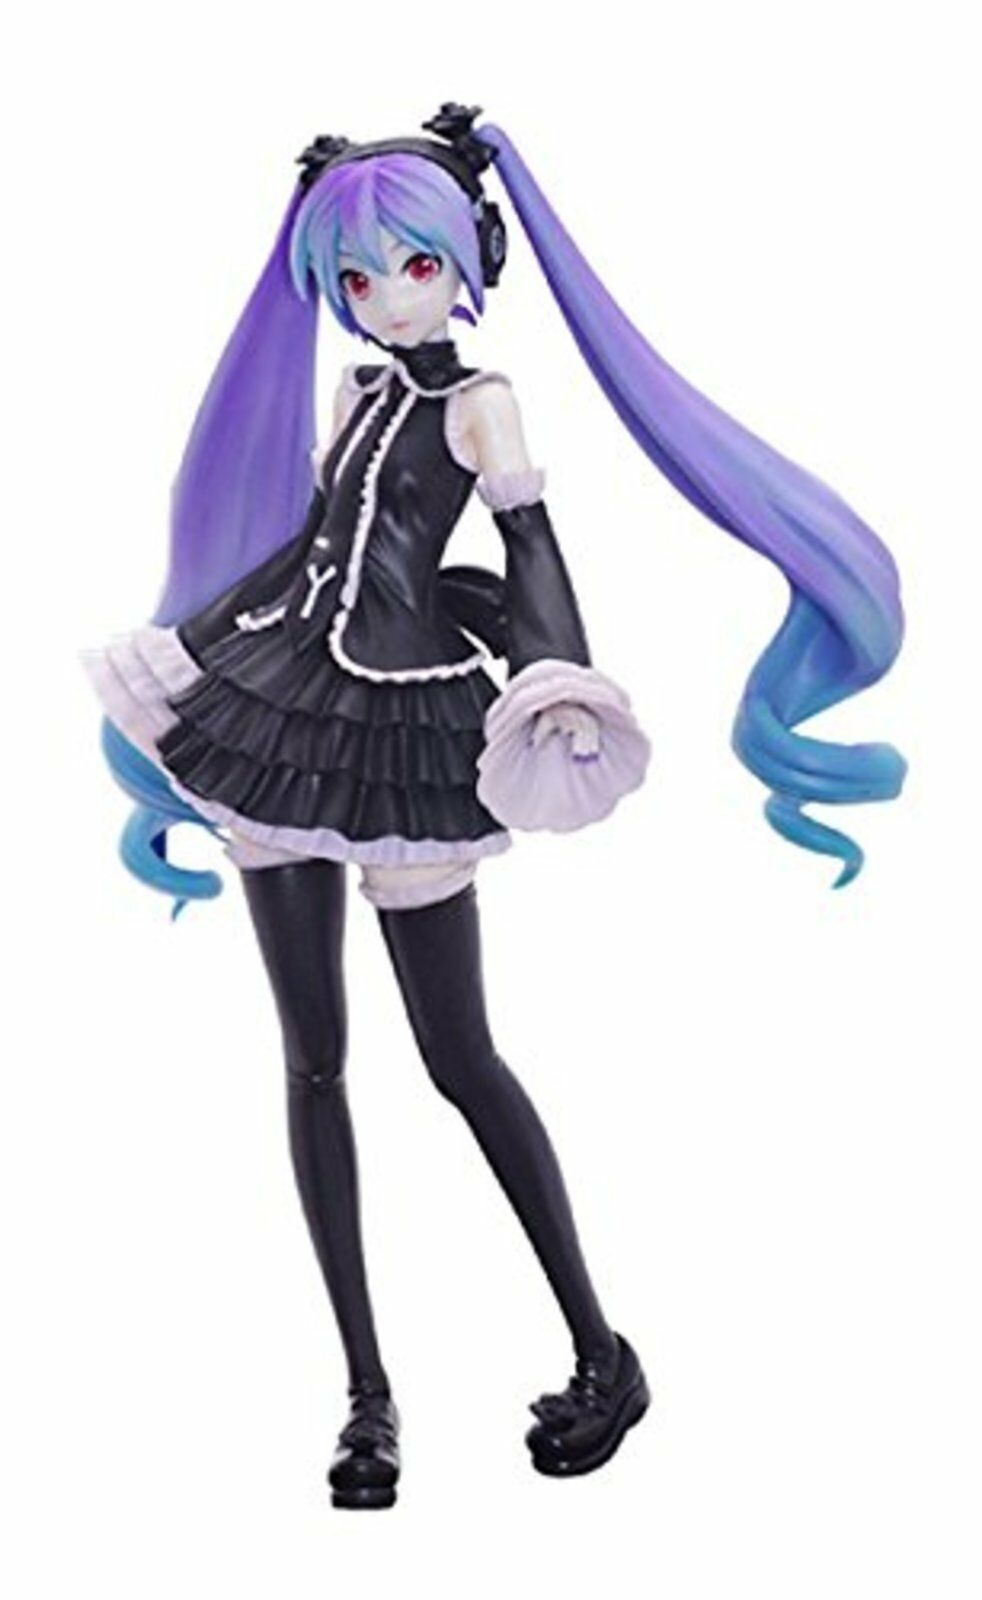 Sega Project Diva Arcade Future Tone Hatsune Miku Super Premium Action Figure,